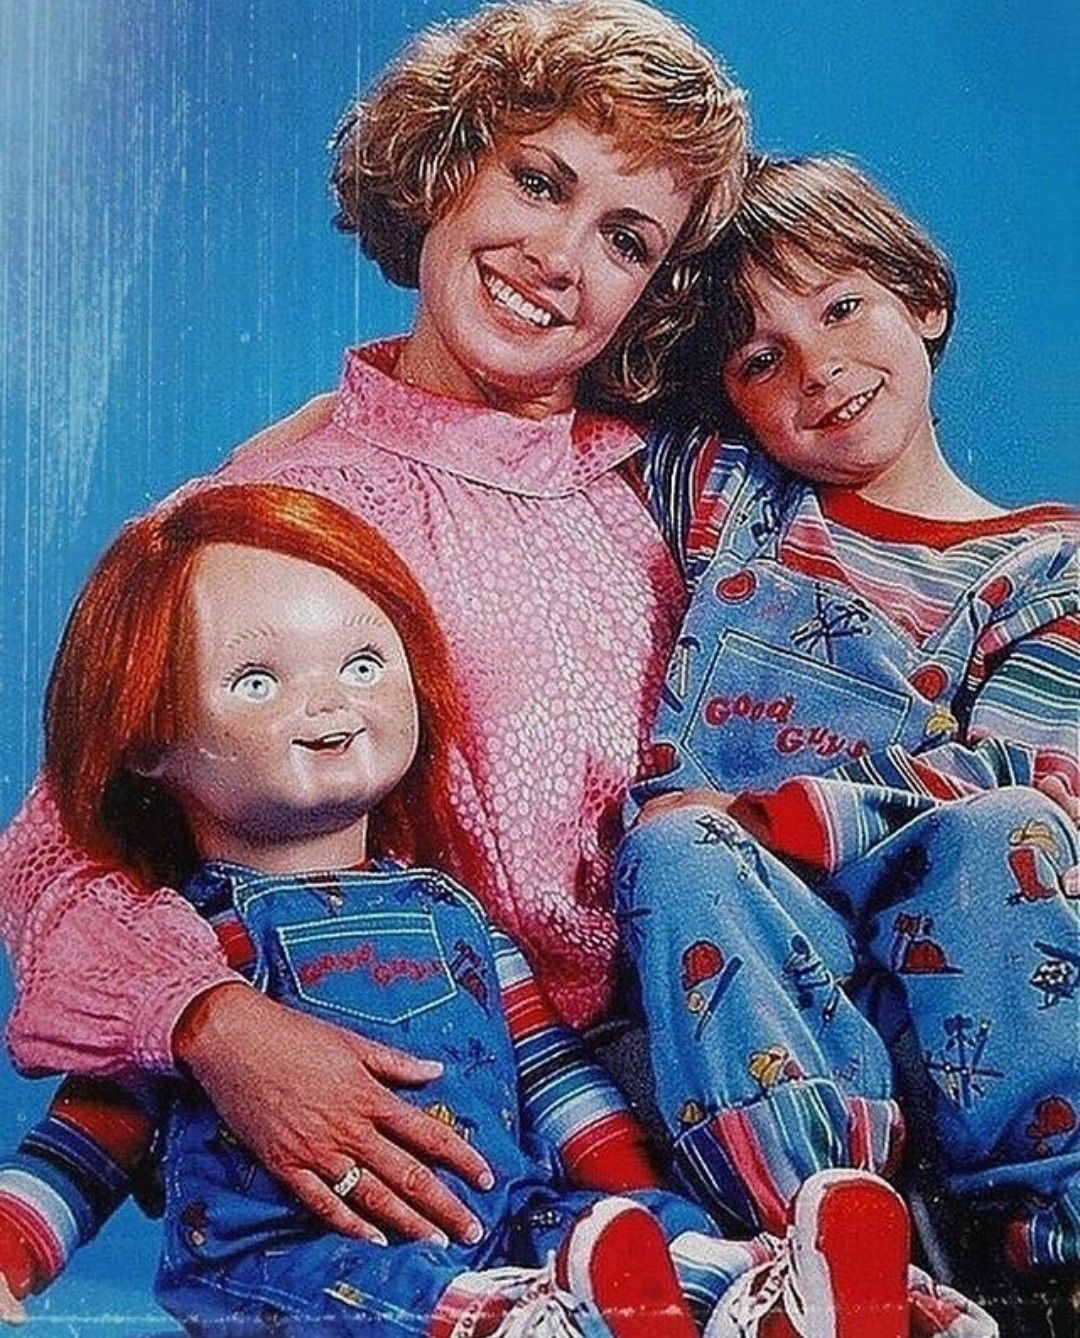 Chuck family photo chucky horror characters childs